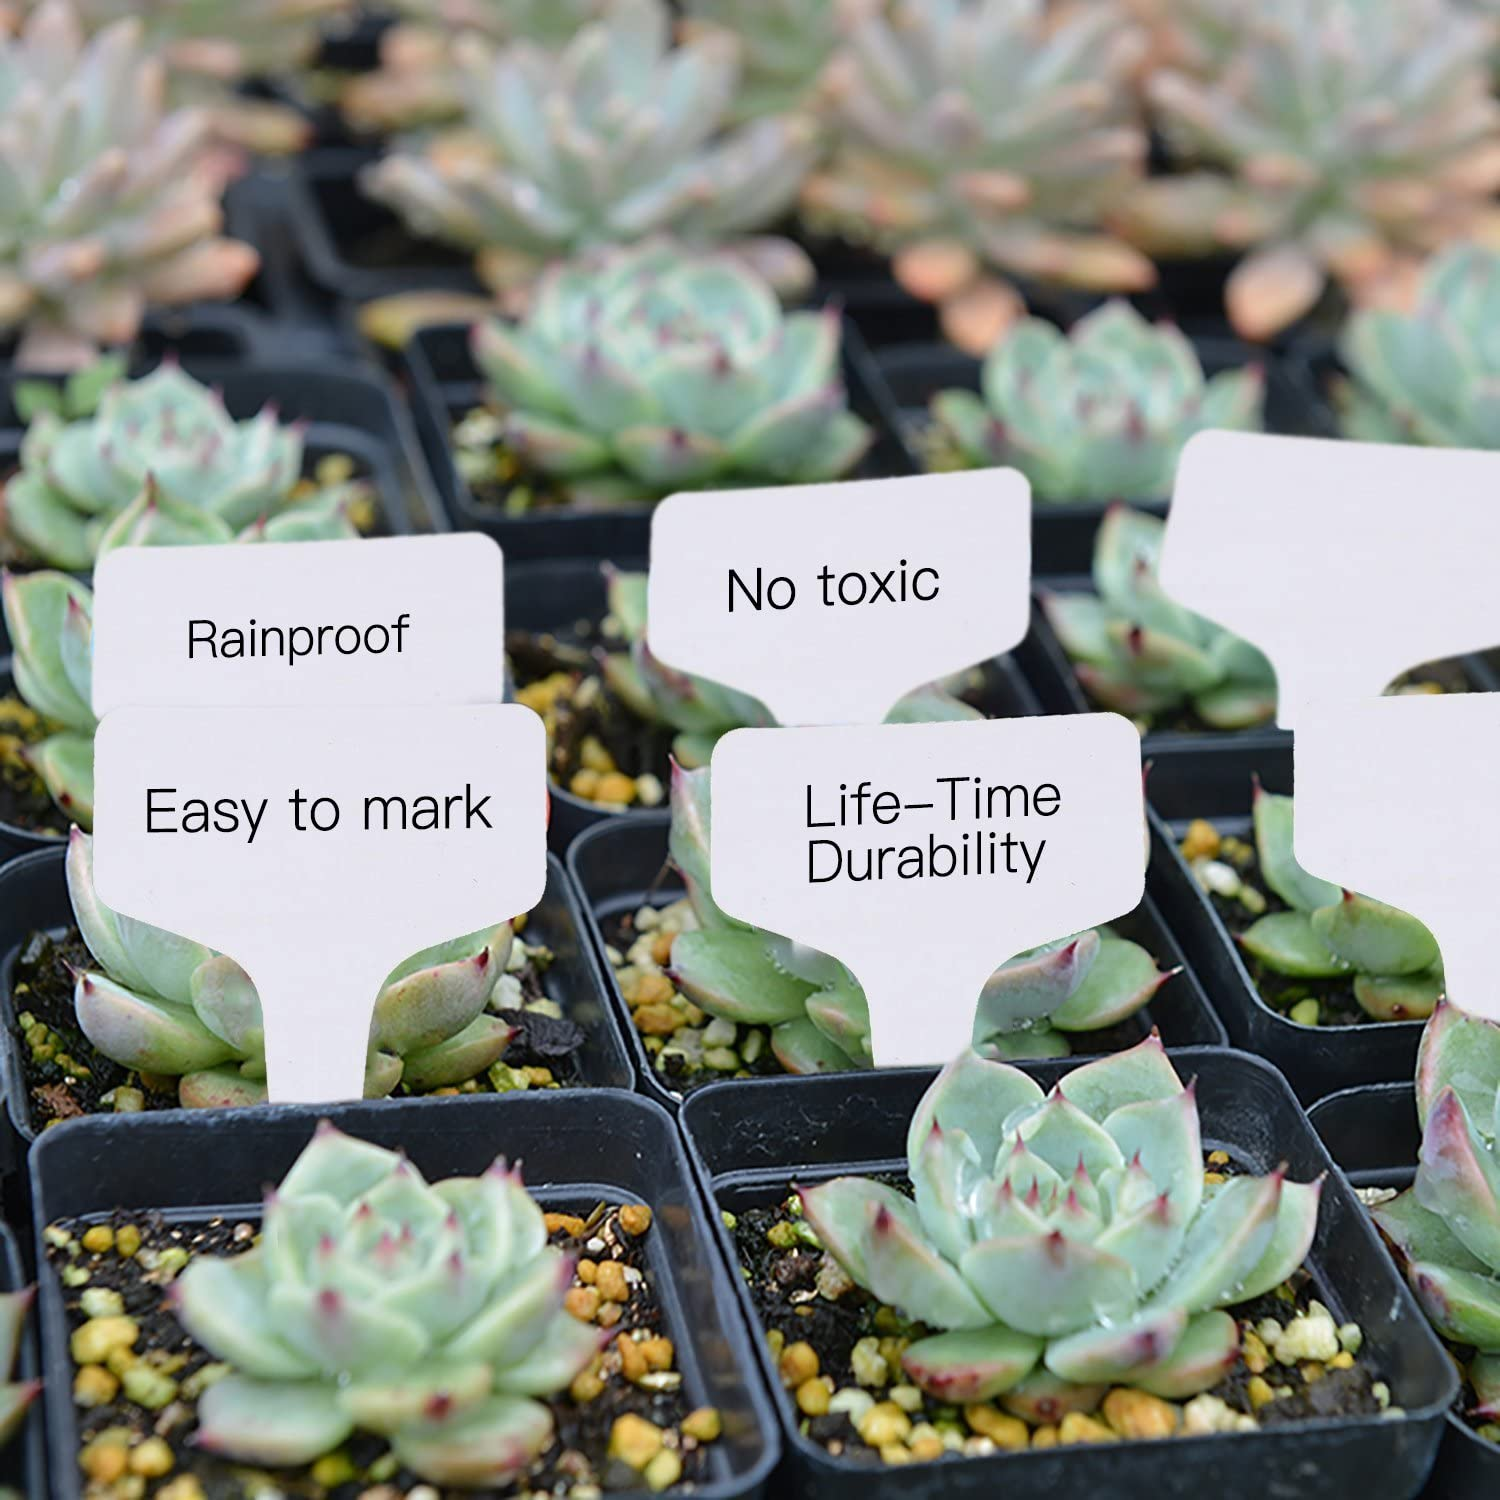 Kalolary 100 Pcs 5 x7cm Plastic Plant T-Type Tags White Waterproof Nursery Garden Markers Re-usable Plant Labels